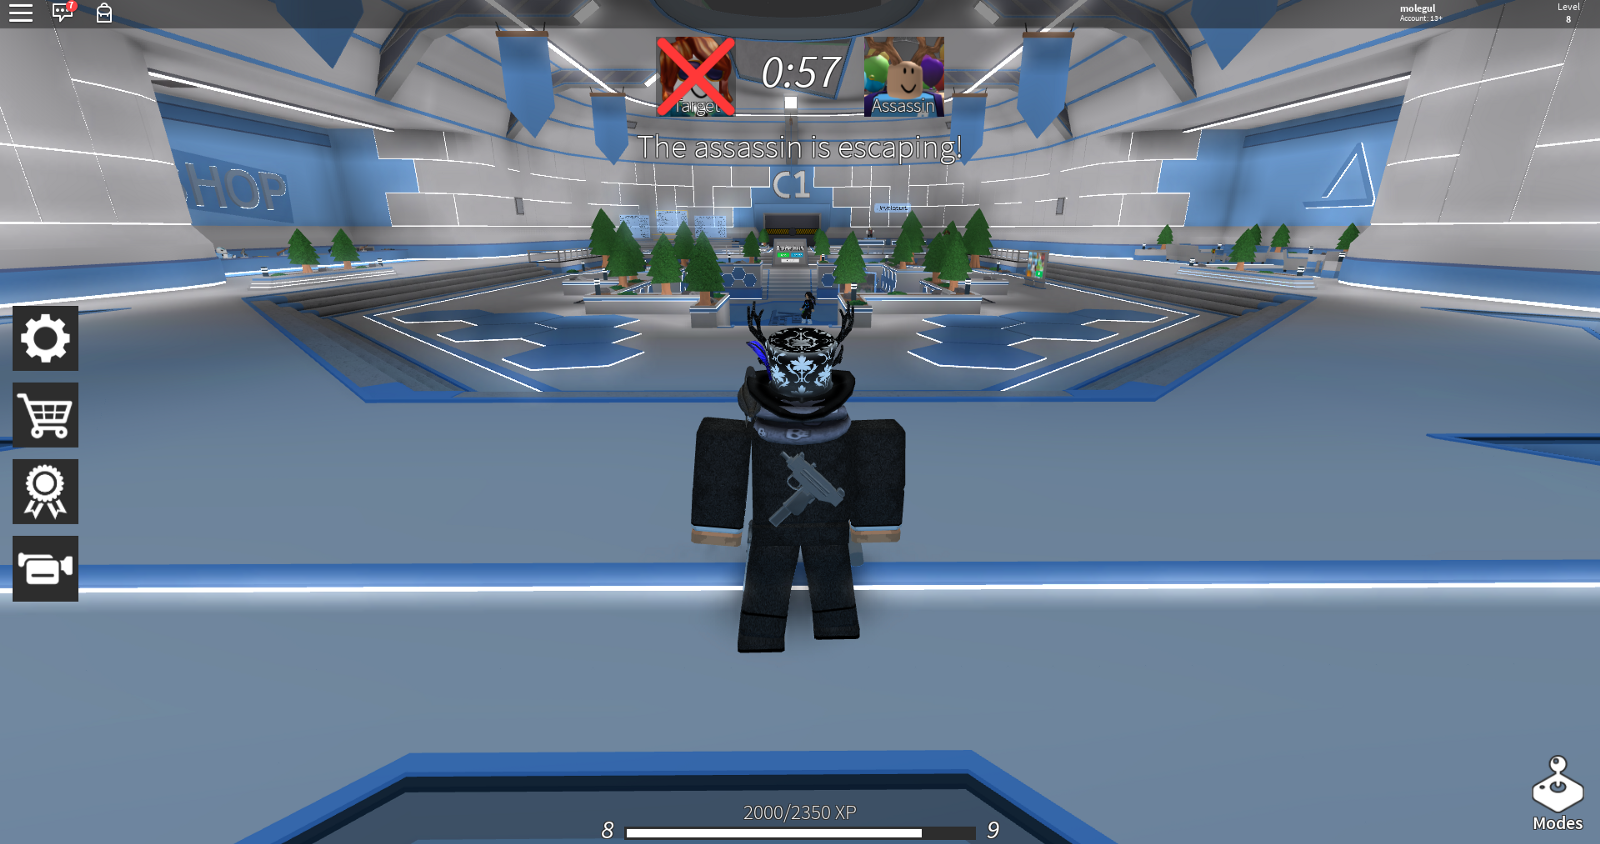 Playroblox Hash Tags Deskgram Roblox Epic Minigames All Gears Roblox Games That Give You Free Items 2019